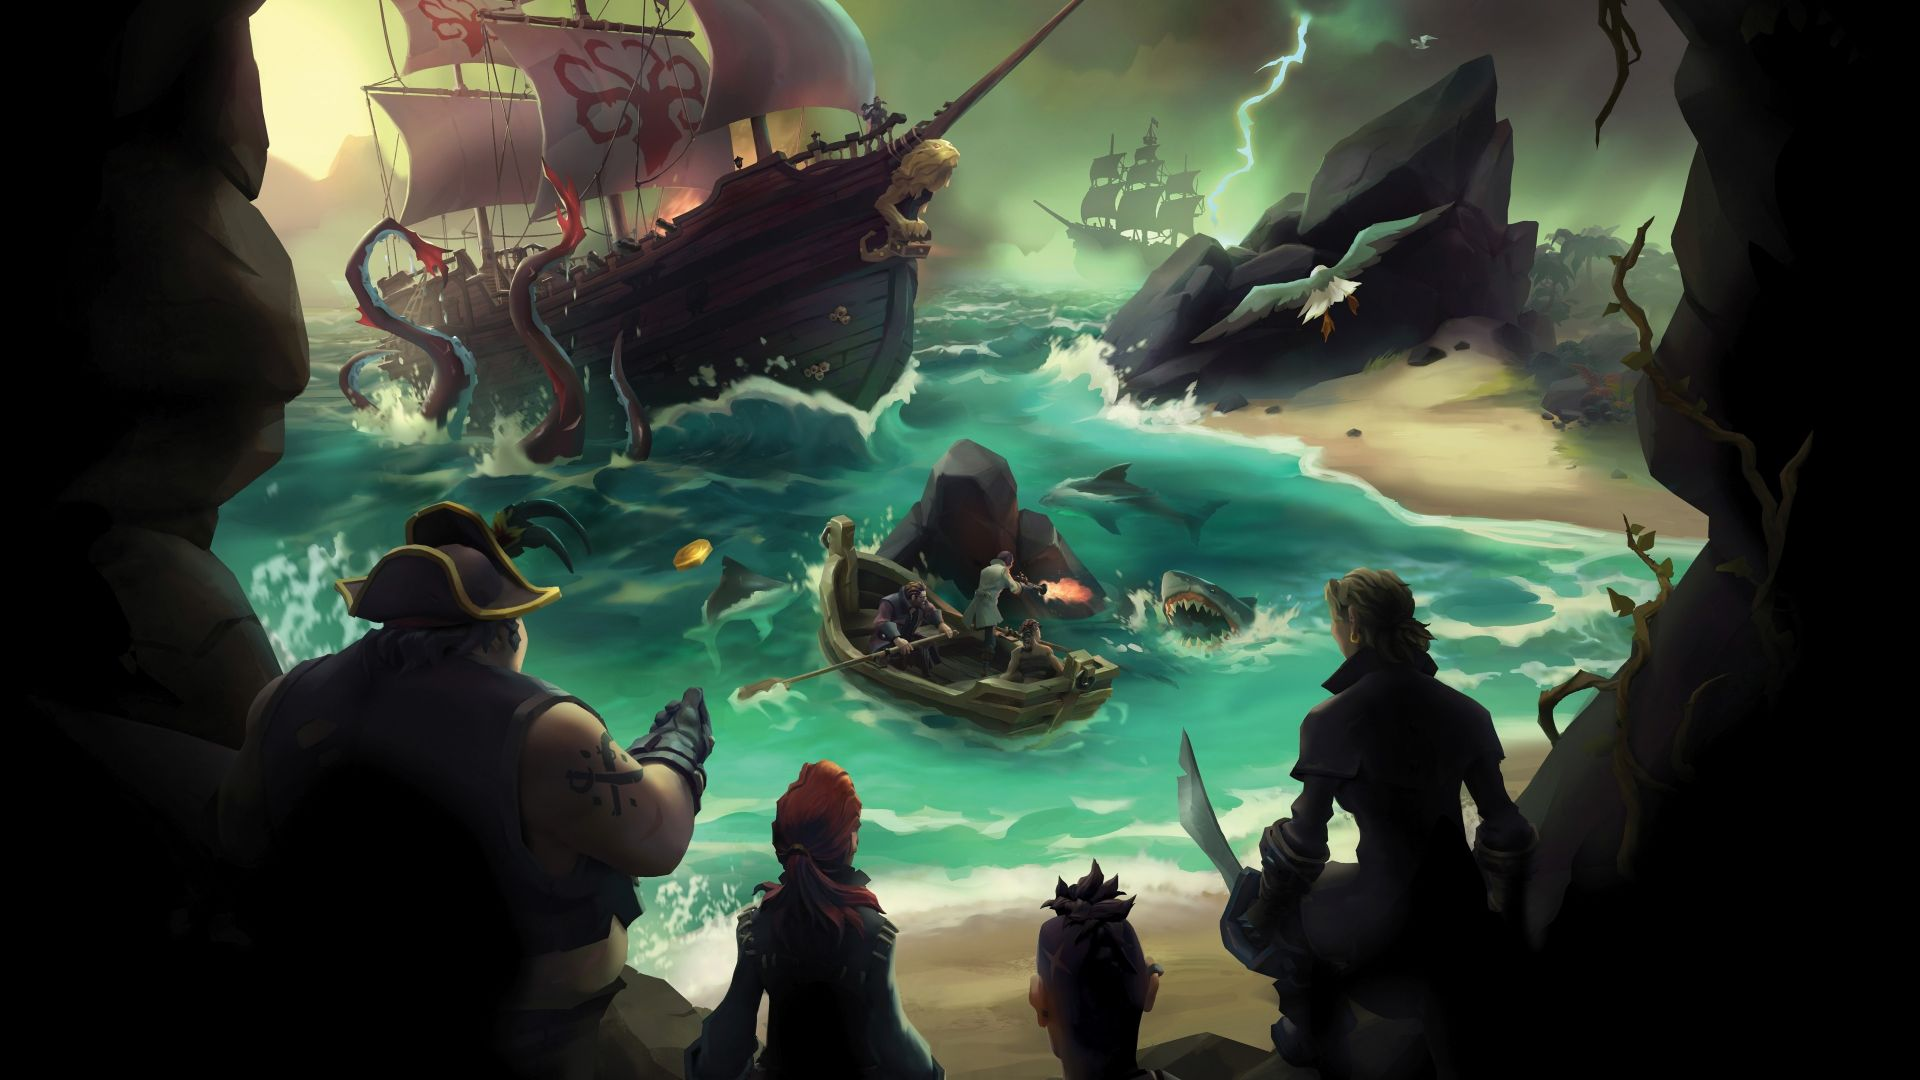 Sea of Thieves, Gamescom 2016, пираты, пк, пс4, иксбокс ван, Sea of Thieves, Gamescom 2016, pirates, best games, pc, ps4, xbox one